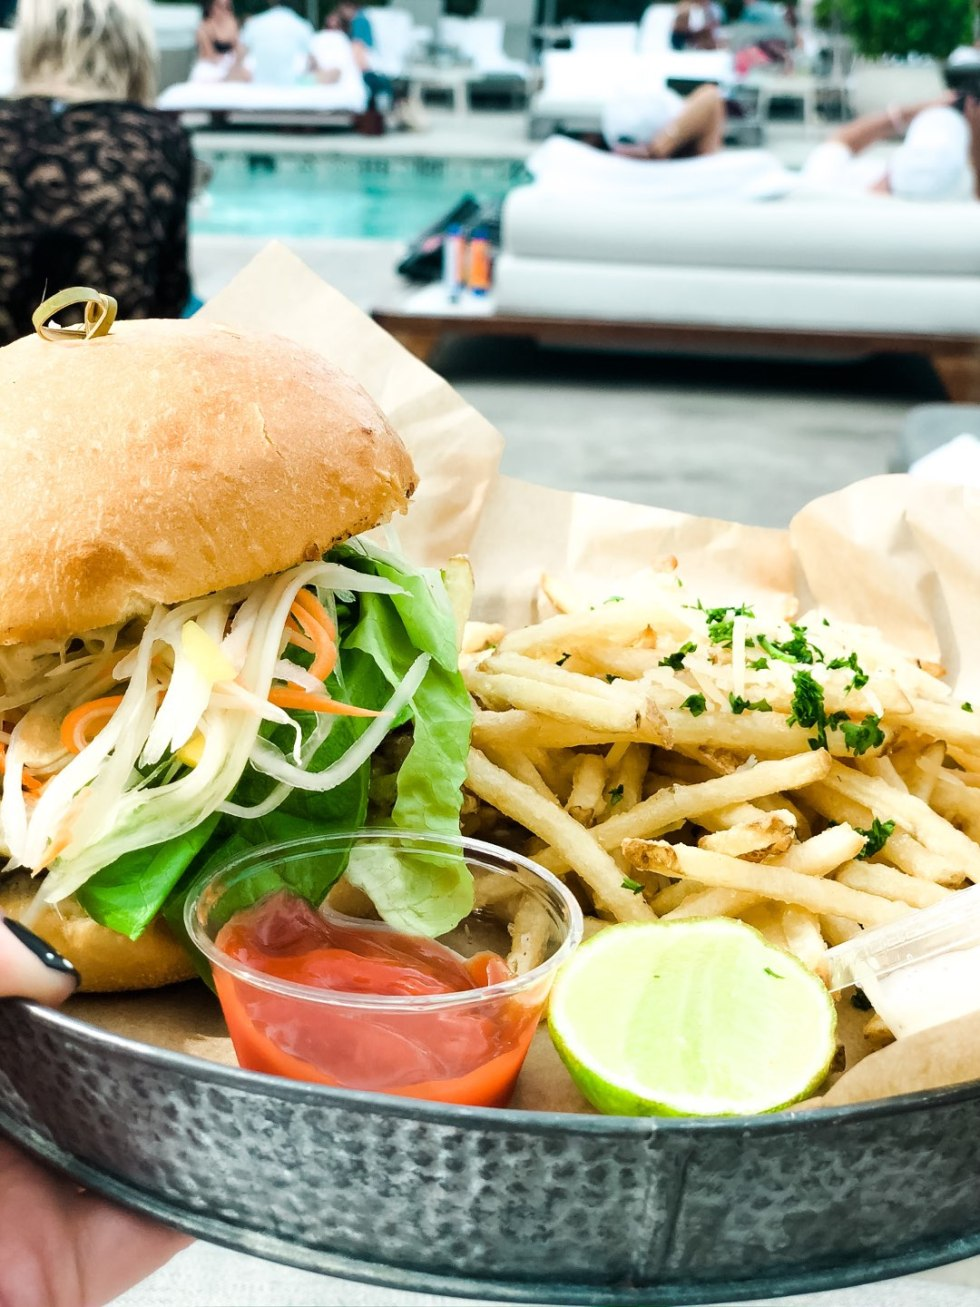 Warming Up in the Bahamas: the Best Things to Do at Baha Mar - I'm Fixin' To - @mbg0112 | Warming Up in the Bahamas: the Best Things to Do in Baha Mar by popular North Carolina travel blog, I'm Fixin' To: image of a burger and some fries.